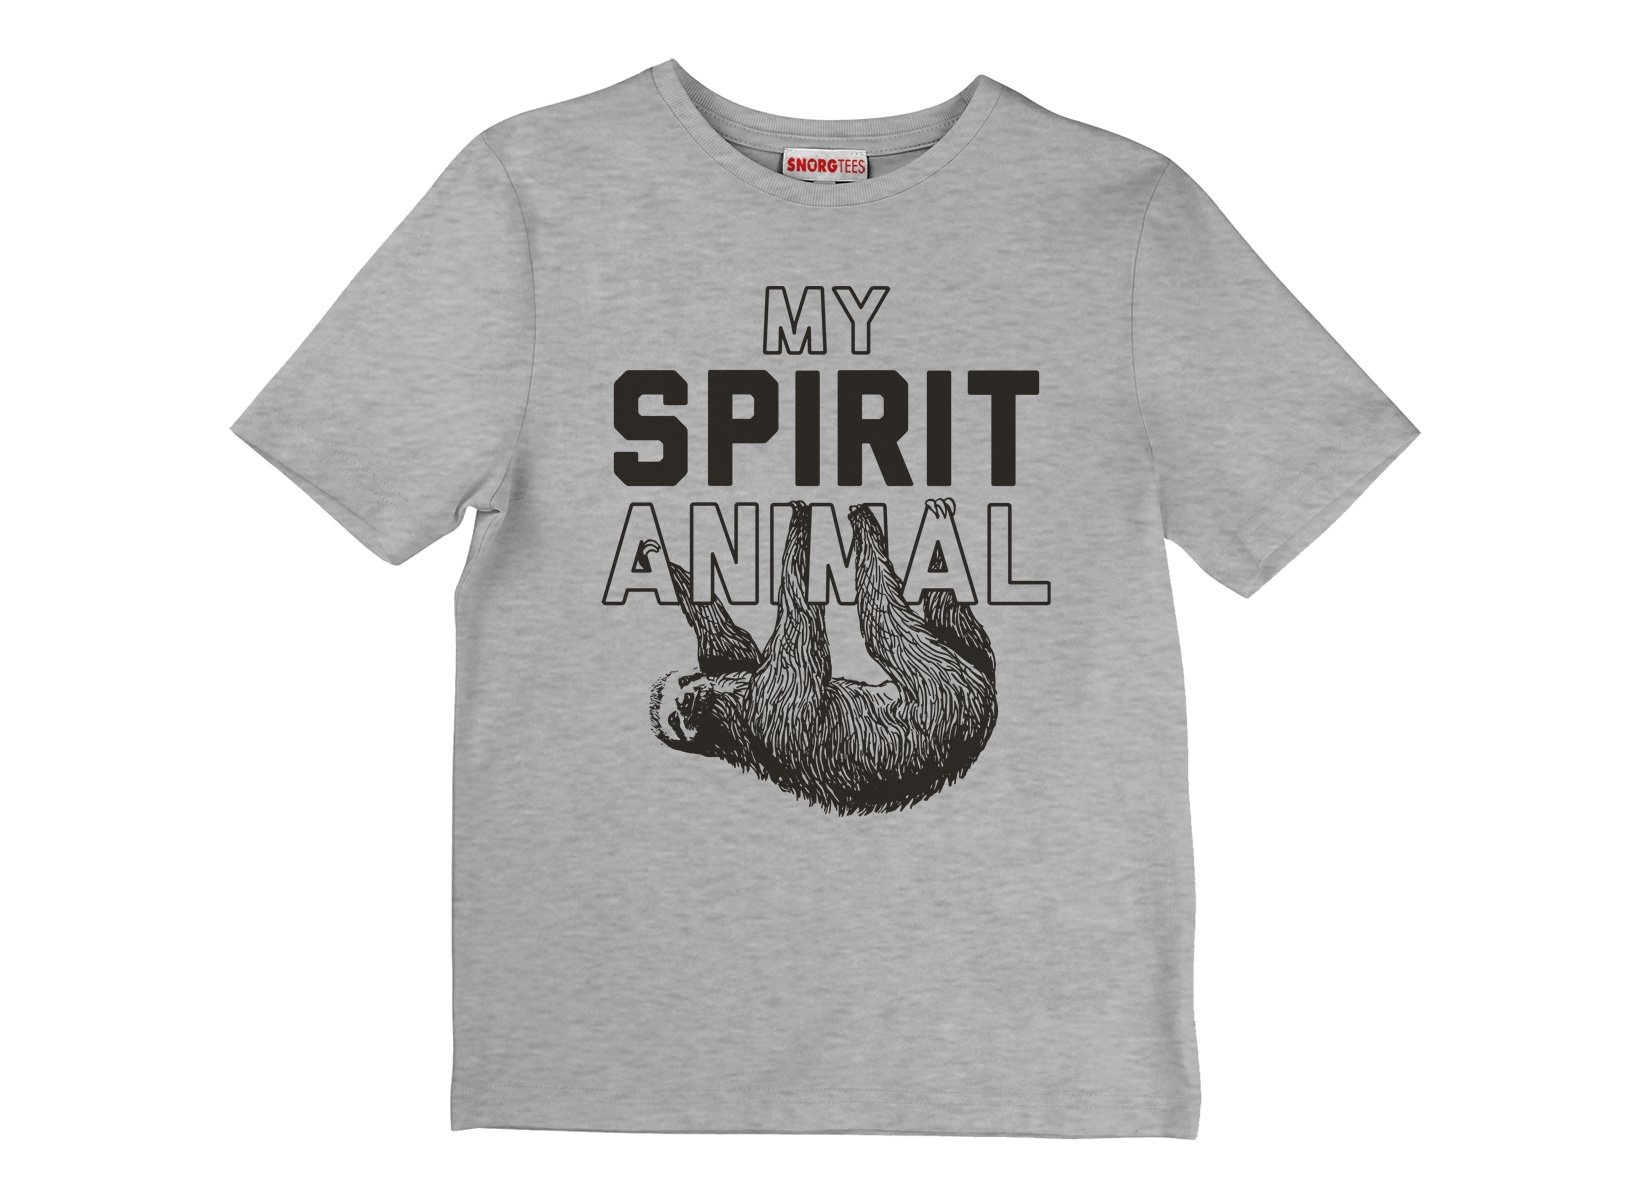 My Spirit Animal on Kids T-Shirt